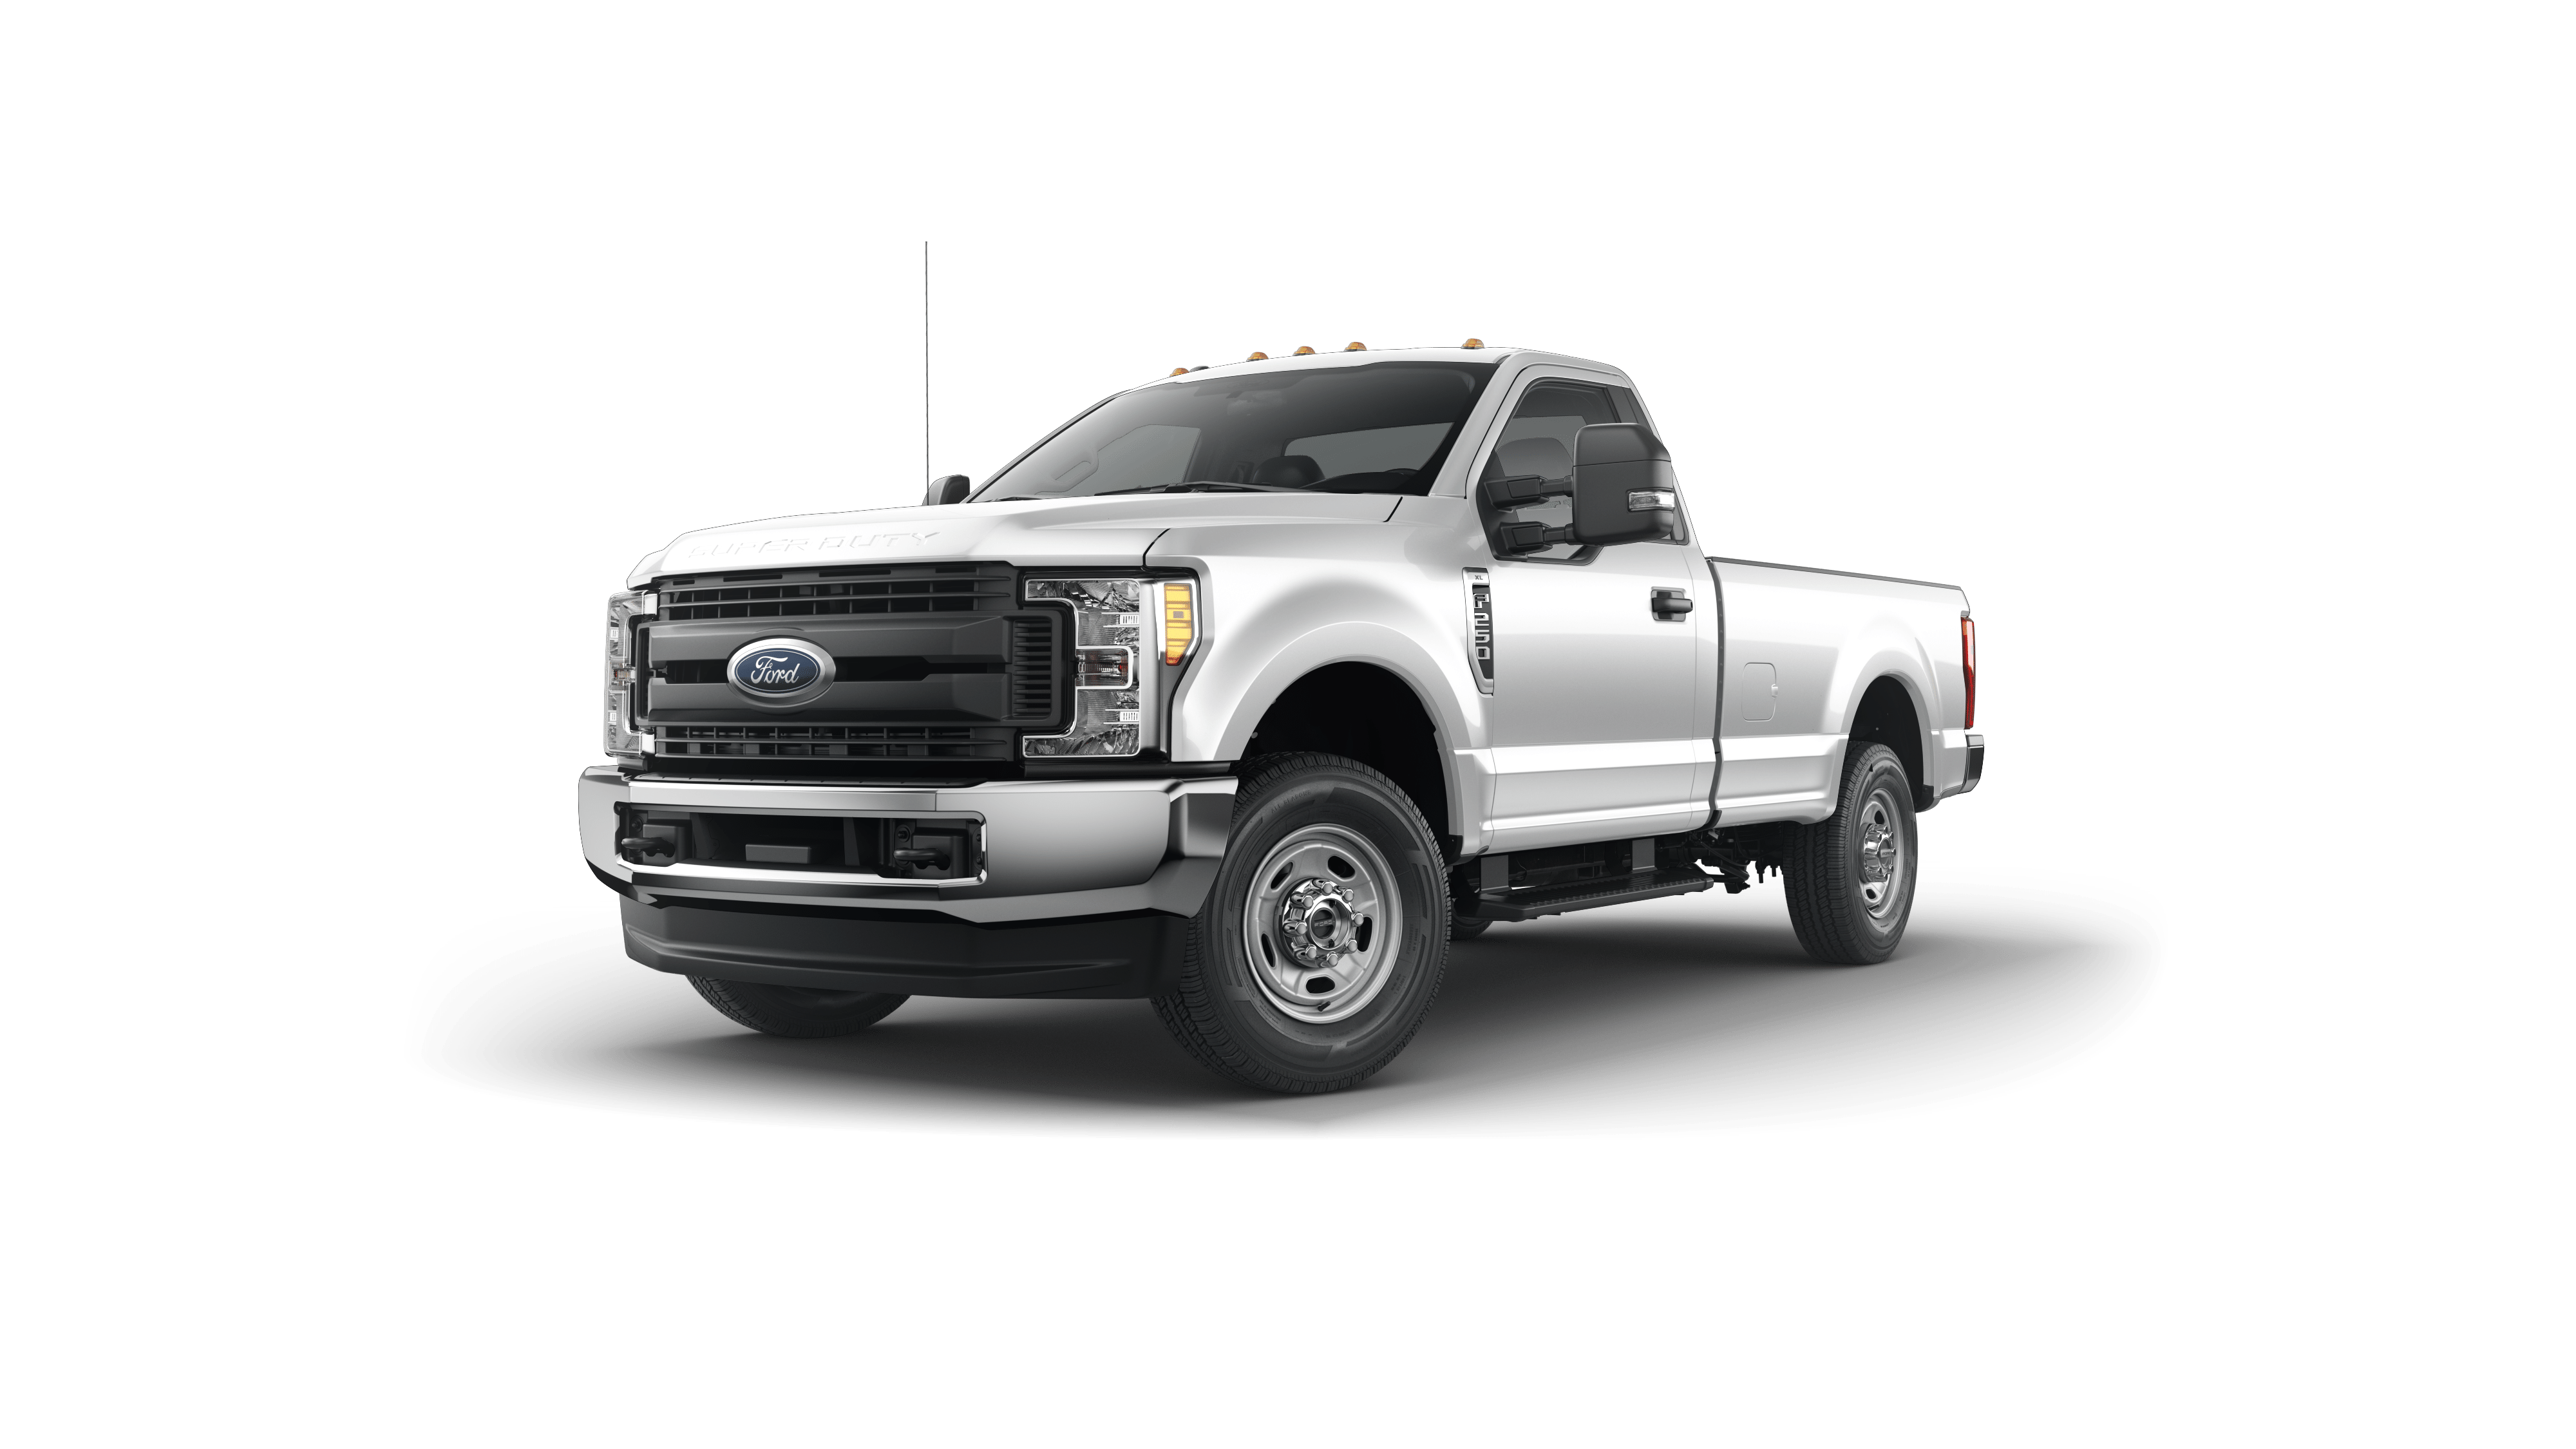 2019 Ford Super Duty F-250 SRW Vehicle Photo in Souderton, PA 18964-1038